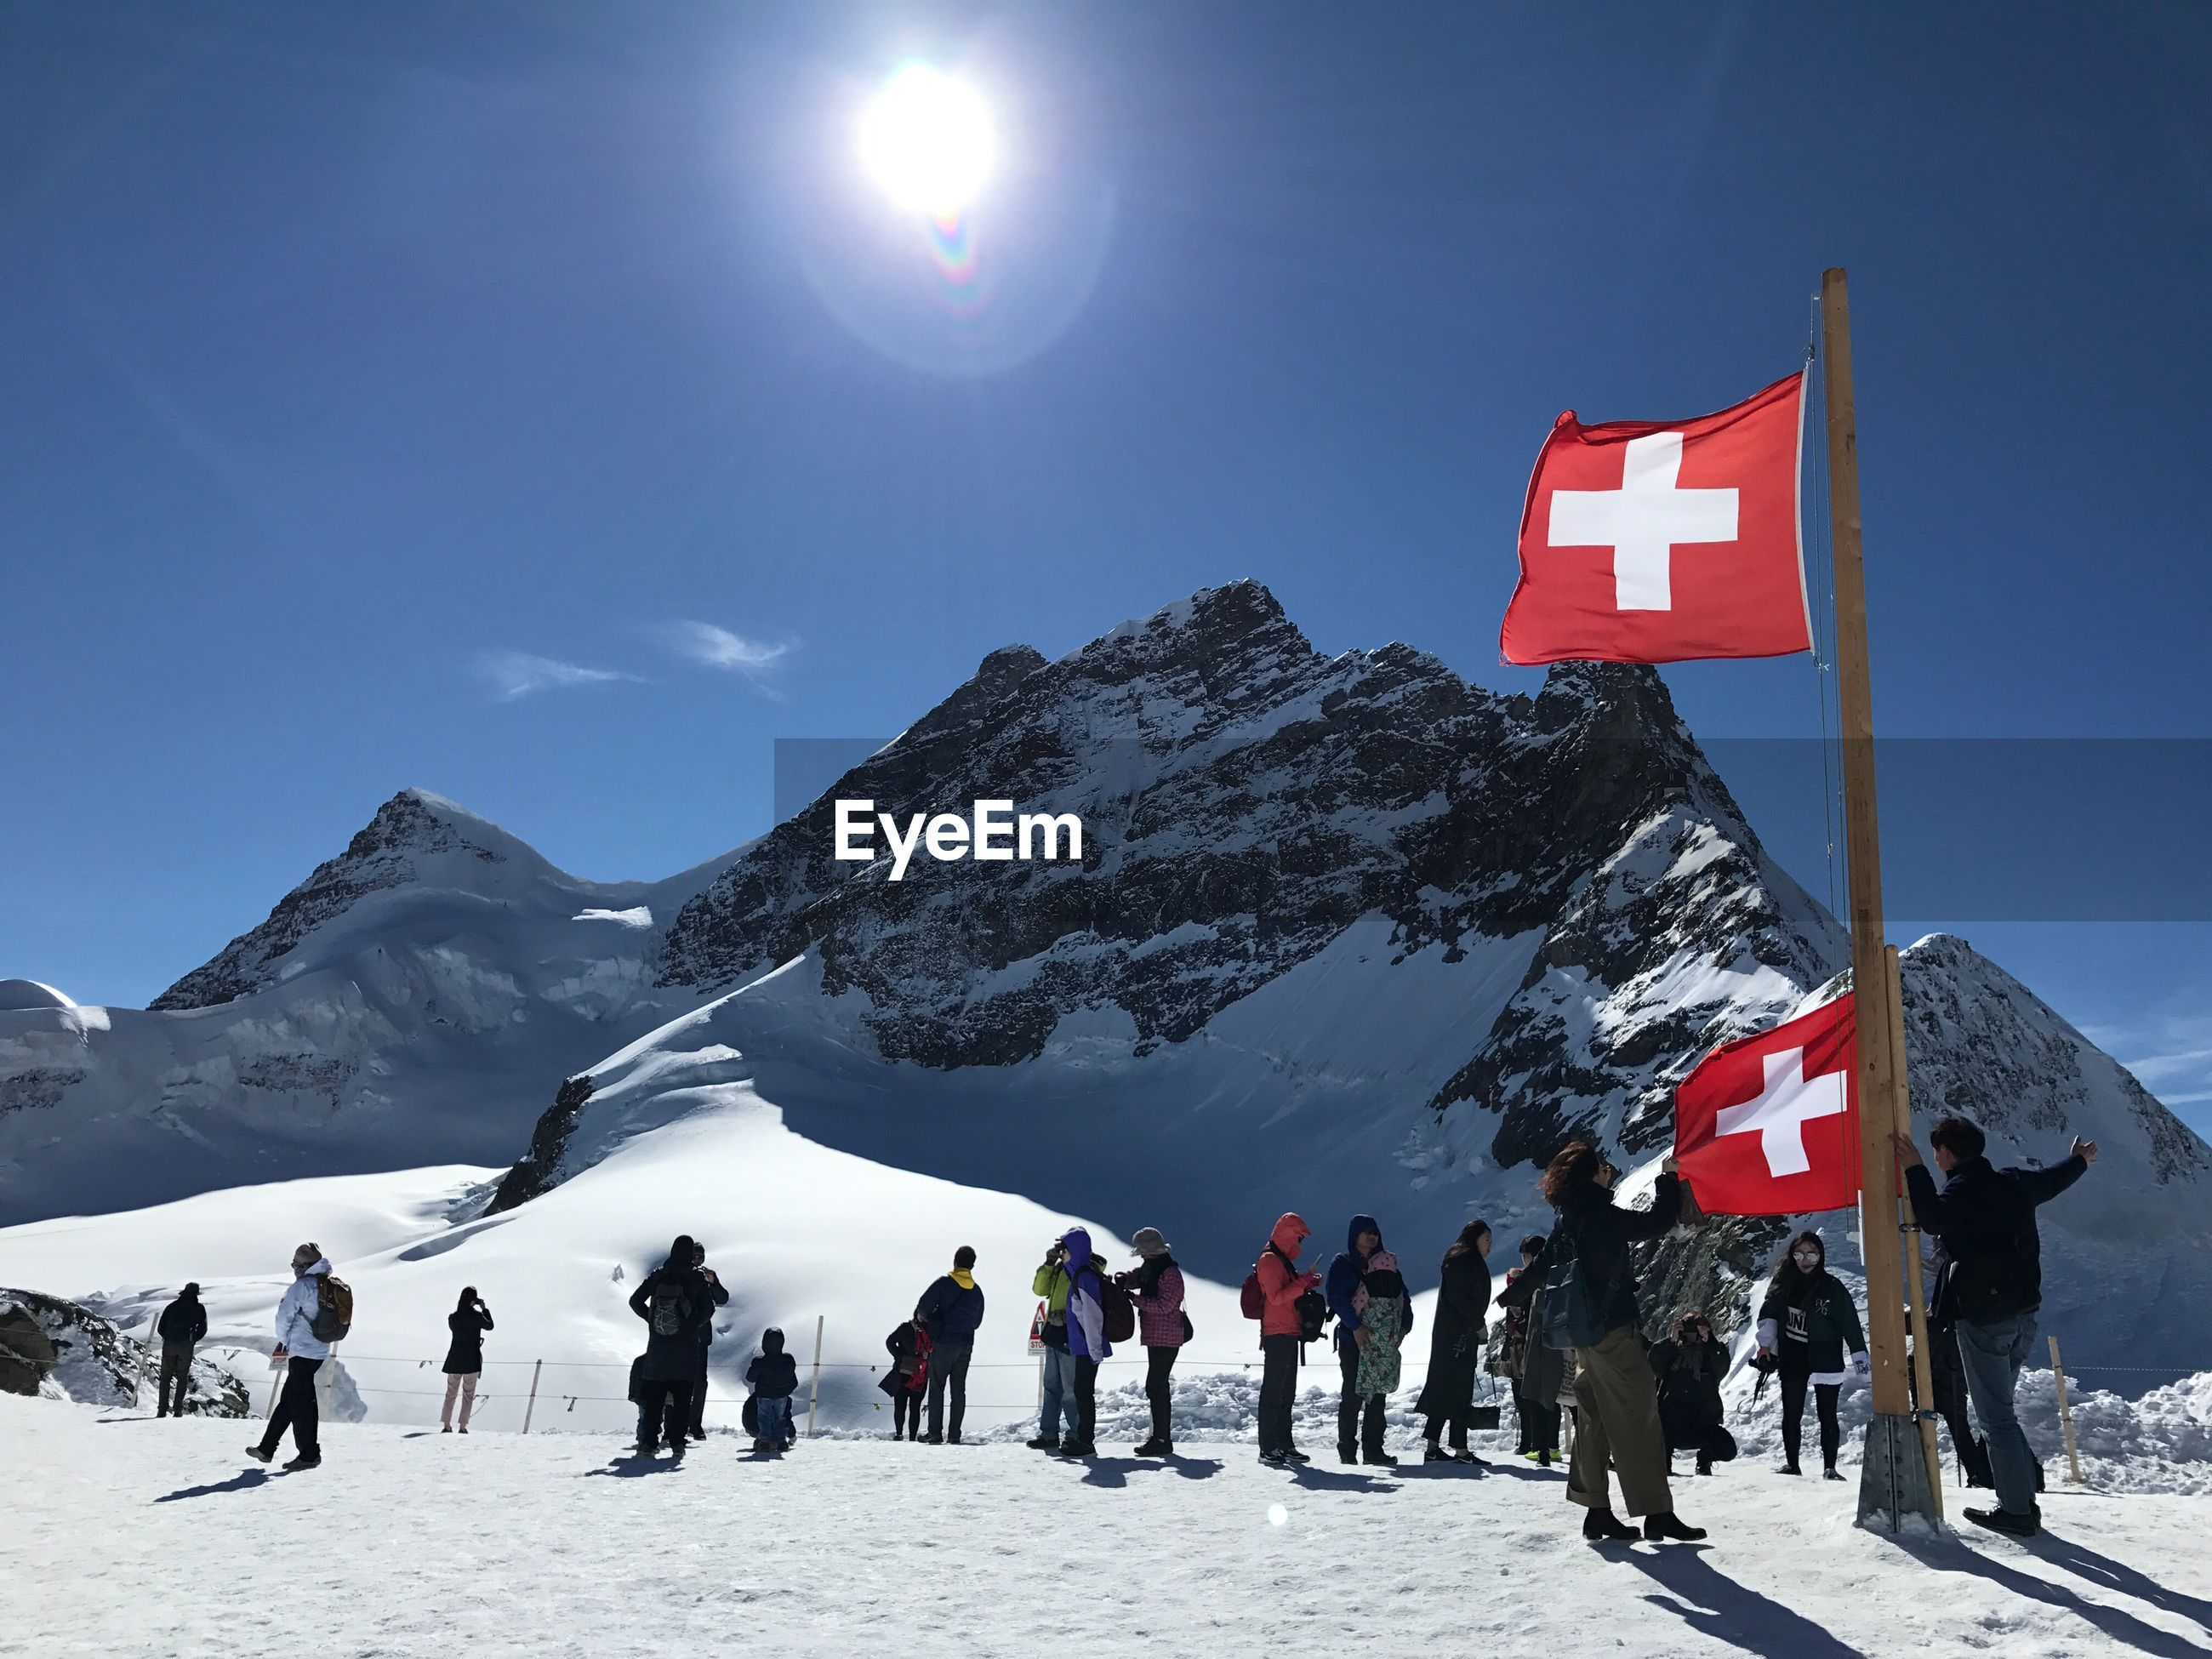 People and swiss flags on snowcapped mountain against clear blue sky